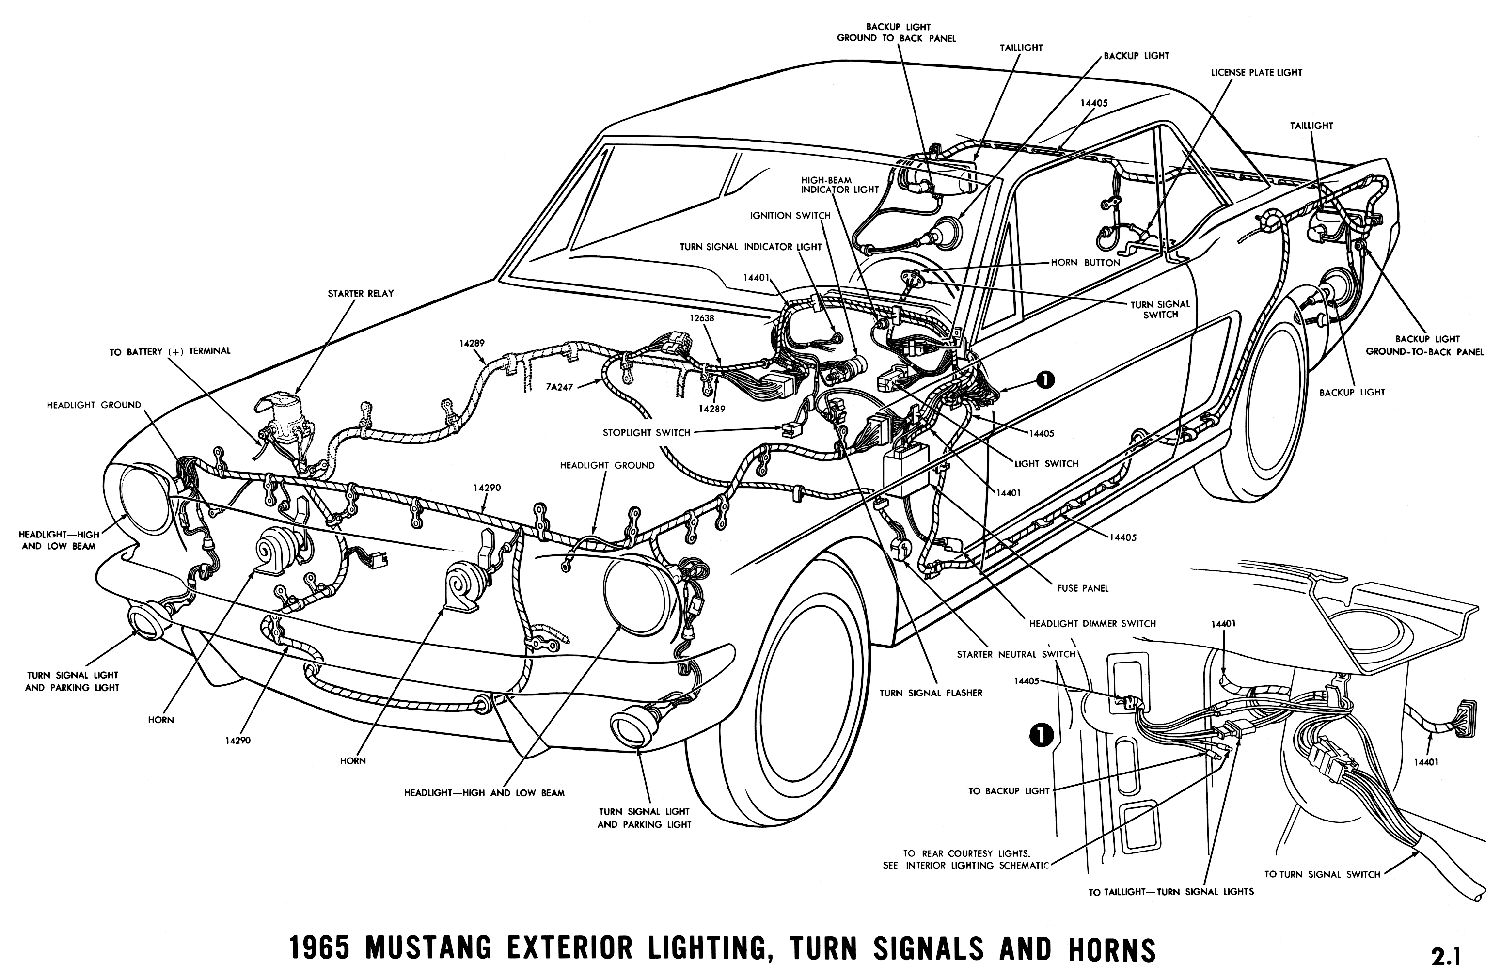 hight resolution of 66 mustang lights wiring diagram data wiring diagram 1965 mustang light wiring diagram 1966 mustang light wiring